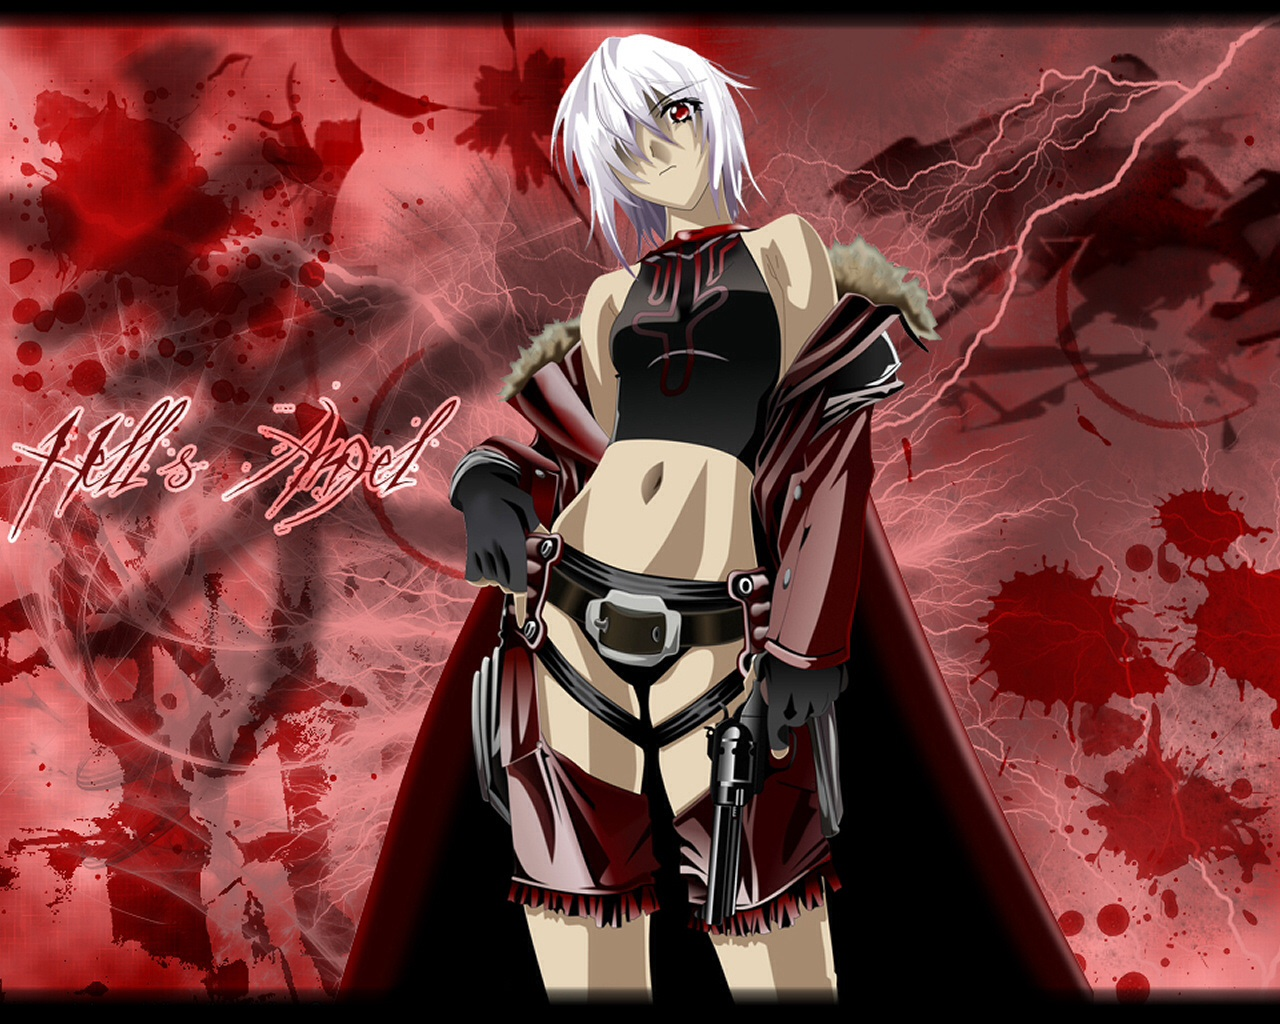 anime images jo bounty hunter hd wallpaper and background